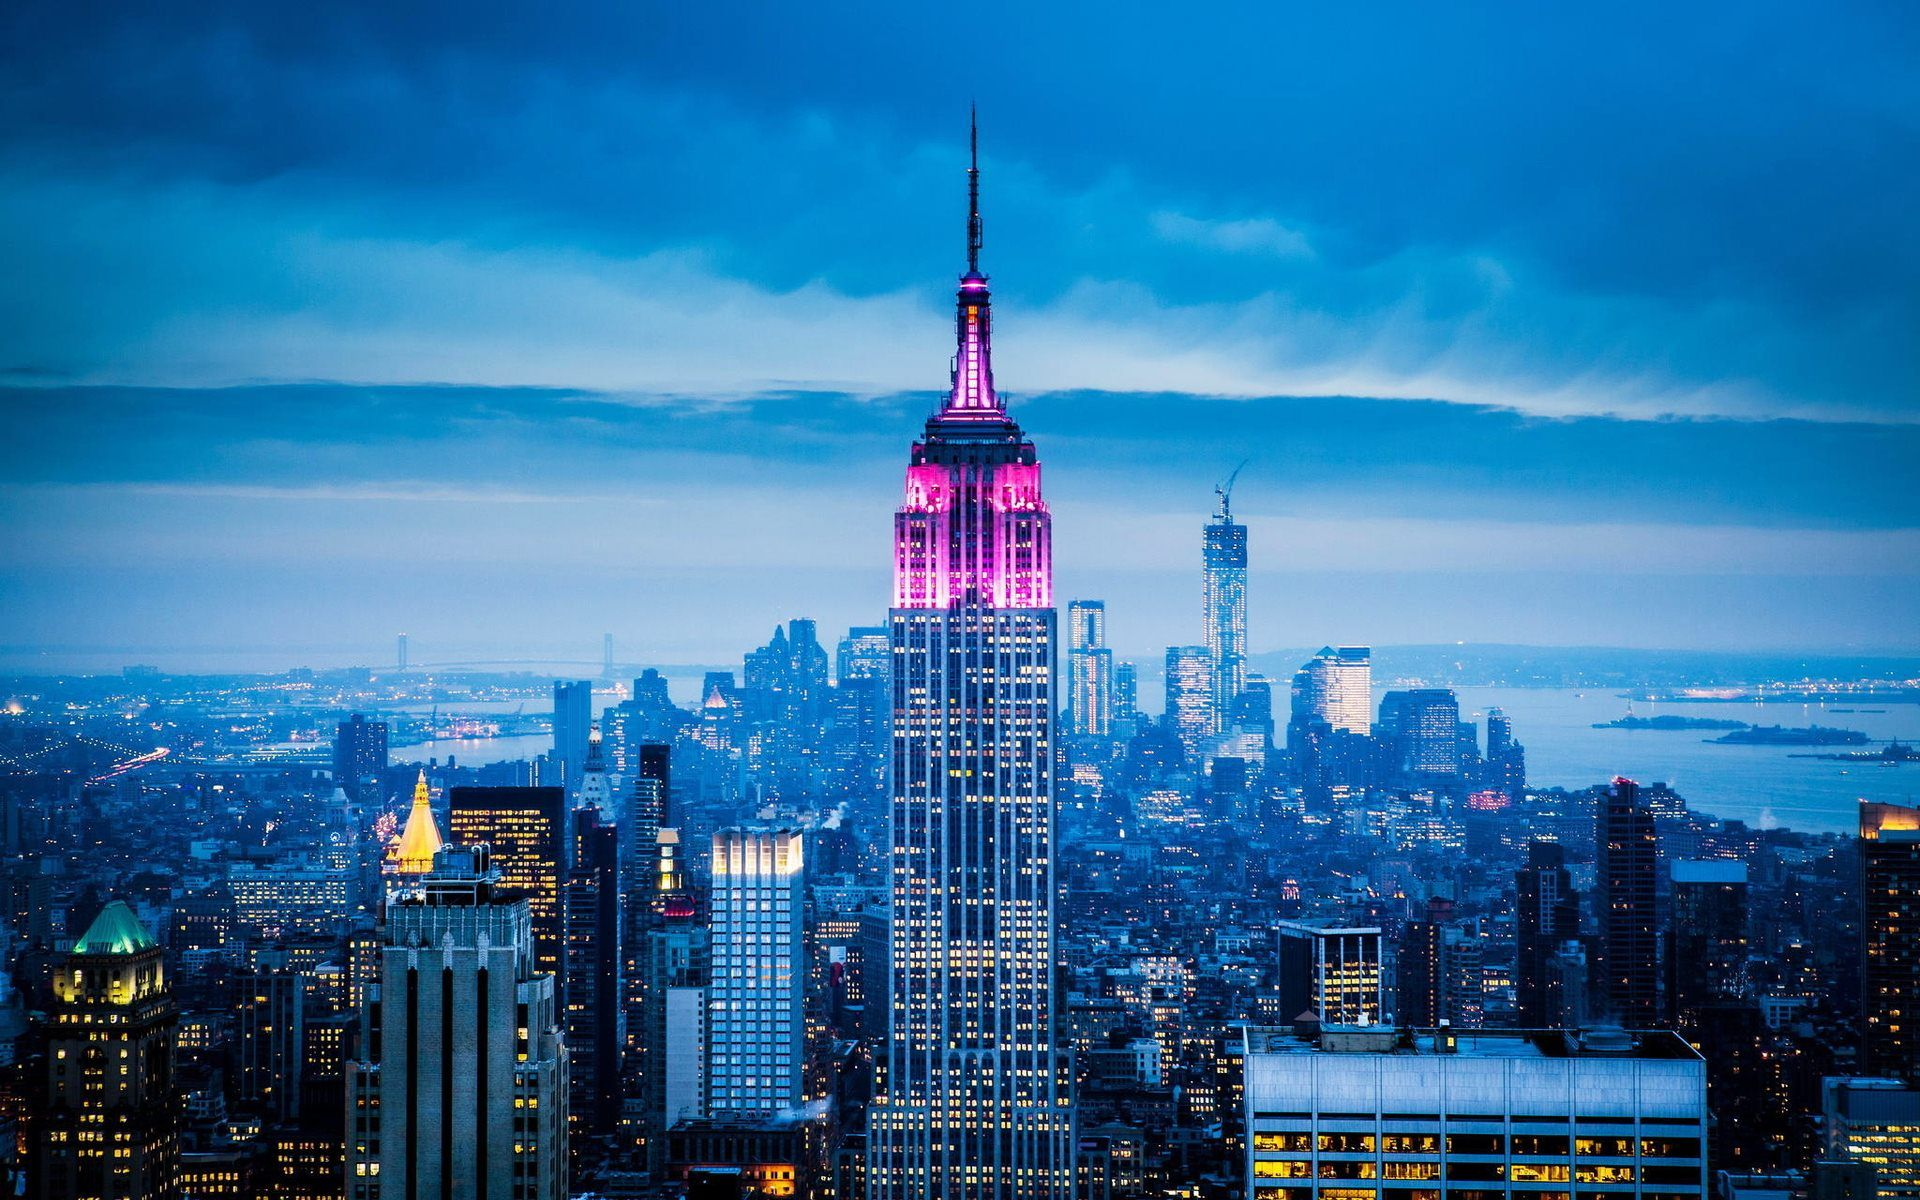 Top 40 Tallest Buildings In The World With Images Empire State